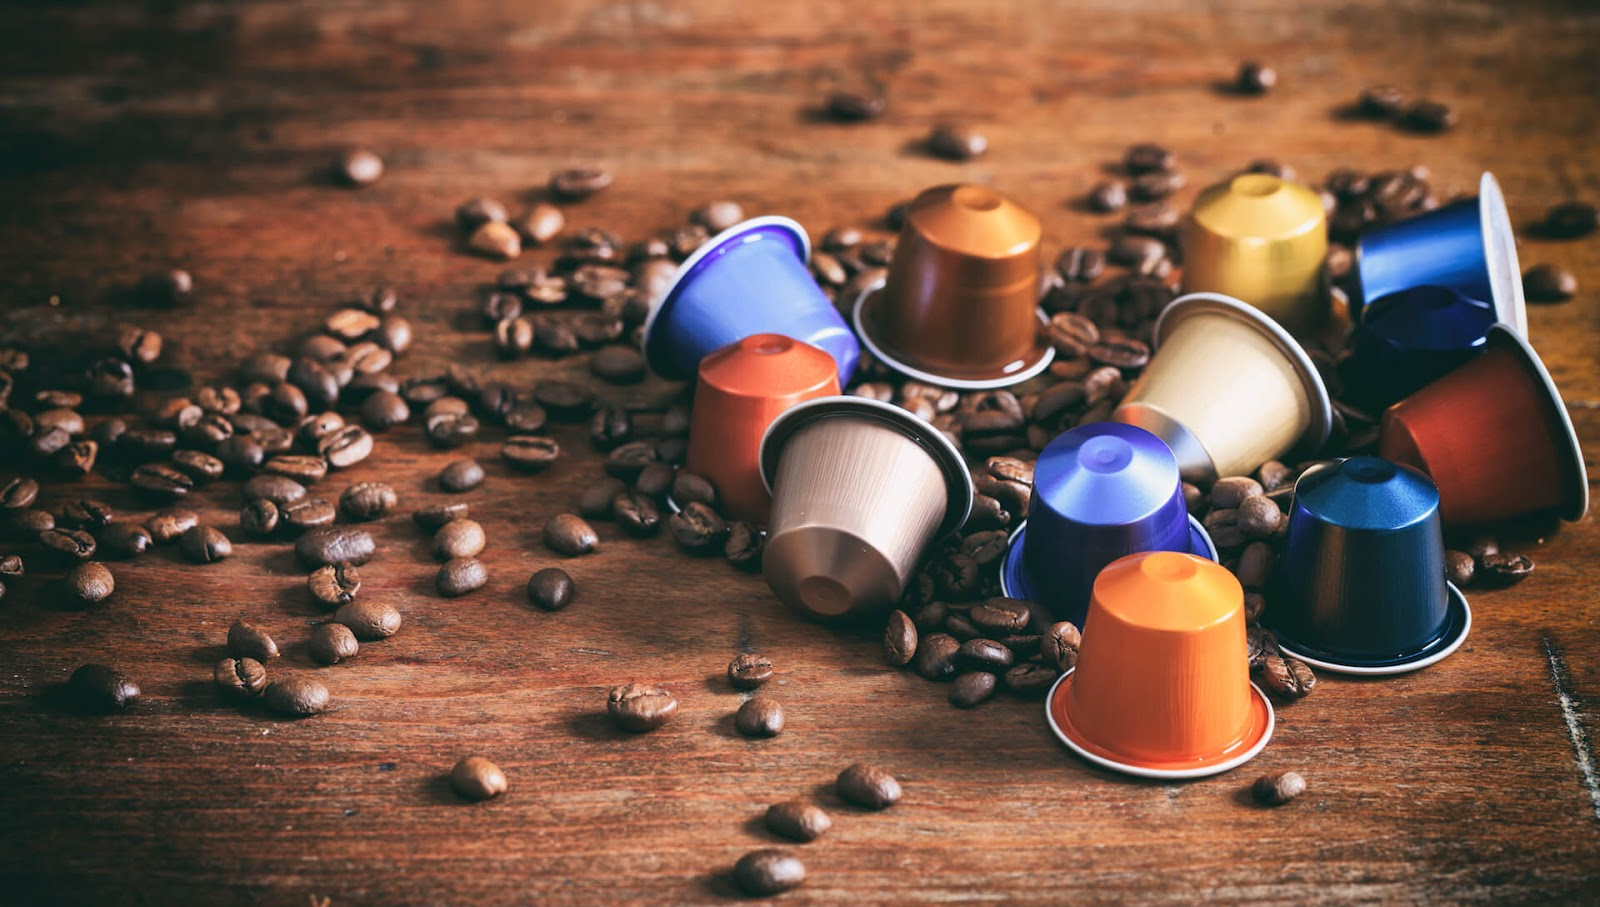 A pile of coffee pods next to some coffee beans